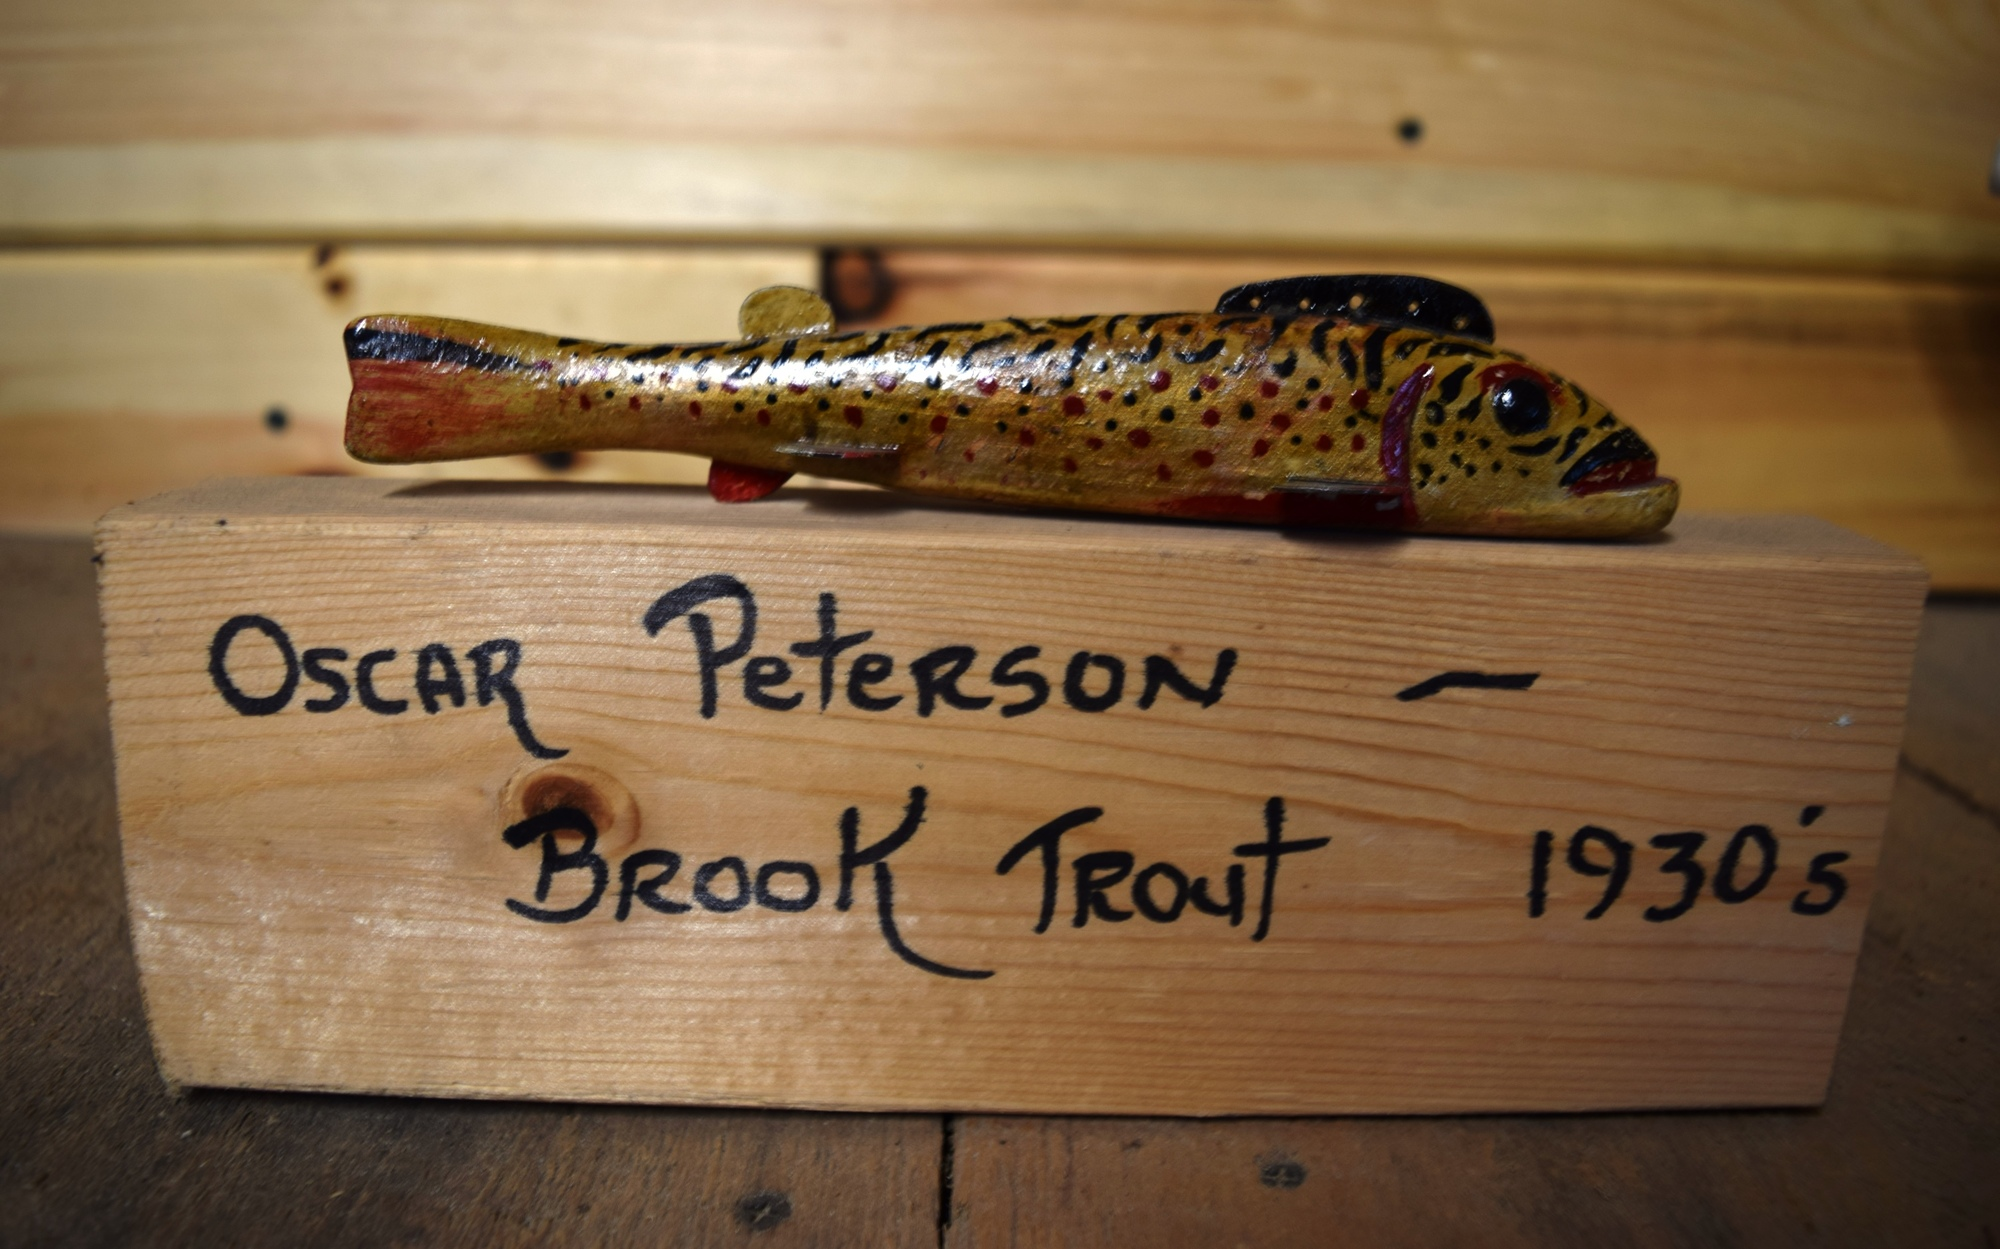 Collector's consider the late Oscar Peterson to be the Vincent Van Gogh of fish decoys.